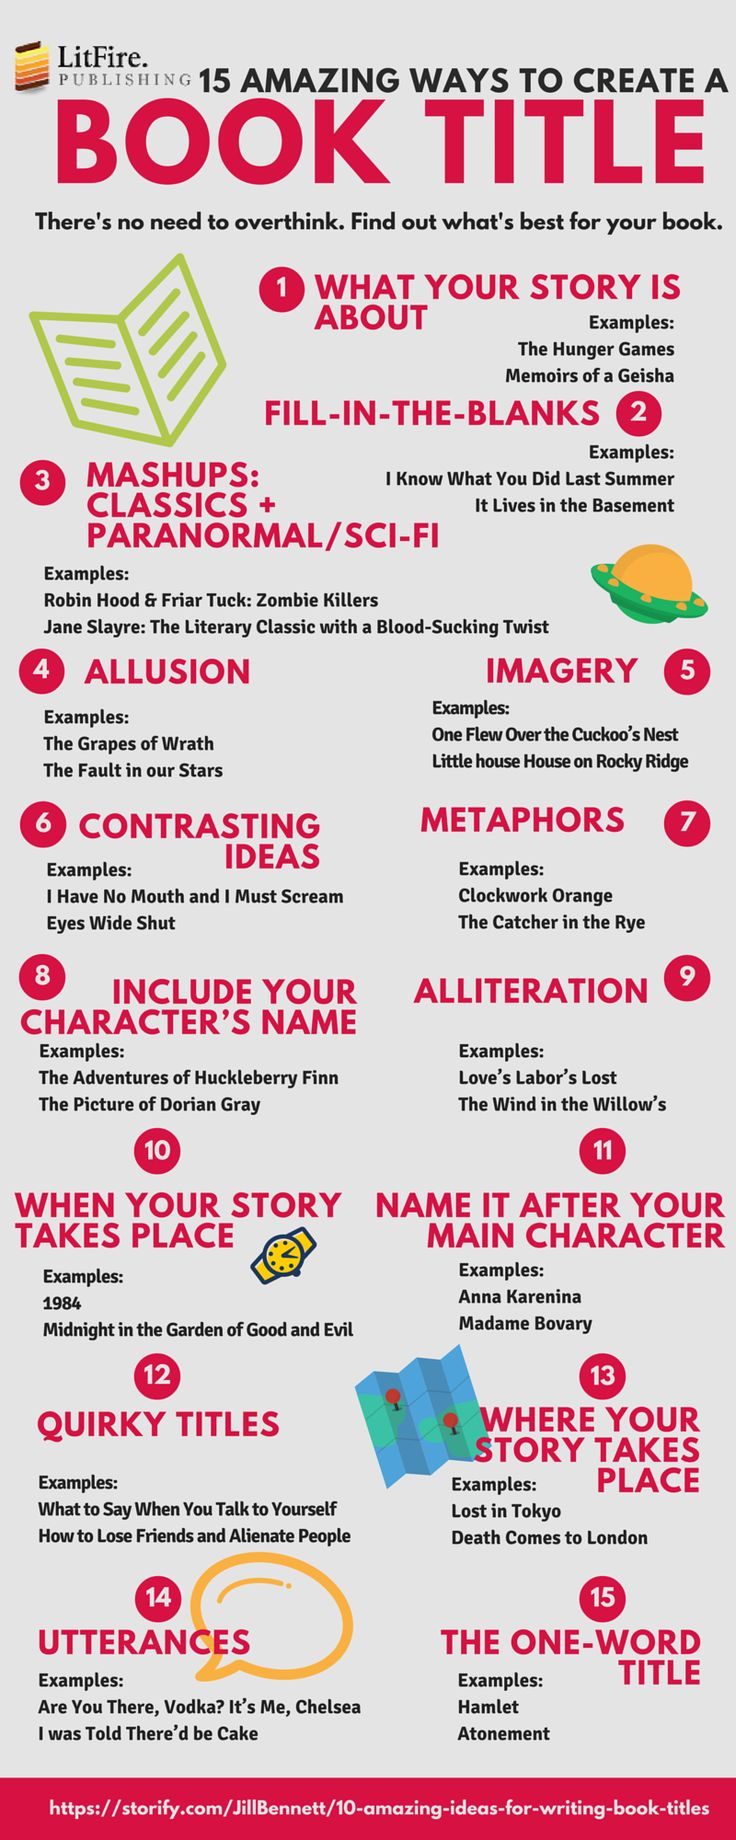 Don't you want an attention-grabbing, thought provoking, emotionally stimulating book cover? Check out these easy, fail-safe ways to create book titles.